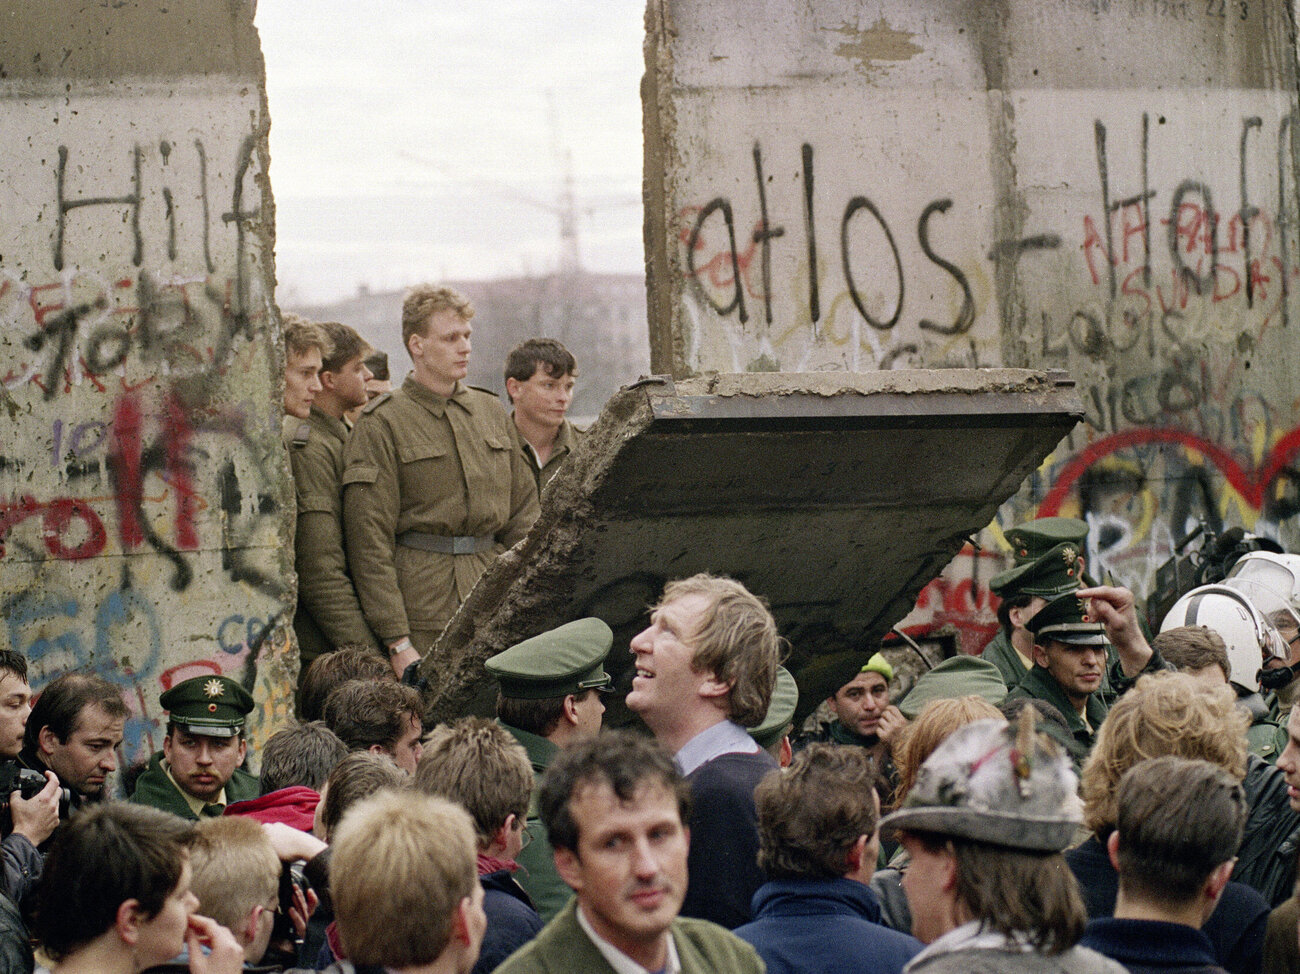 West Berliners crowd in front of the Berlin Wall on Nov. 11, 1989, as they watch East German border guards demolishing a section of the wall in order to open a new crossing point between East and West Berlin. (Gerard Malie /AFP/Getty Images)